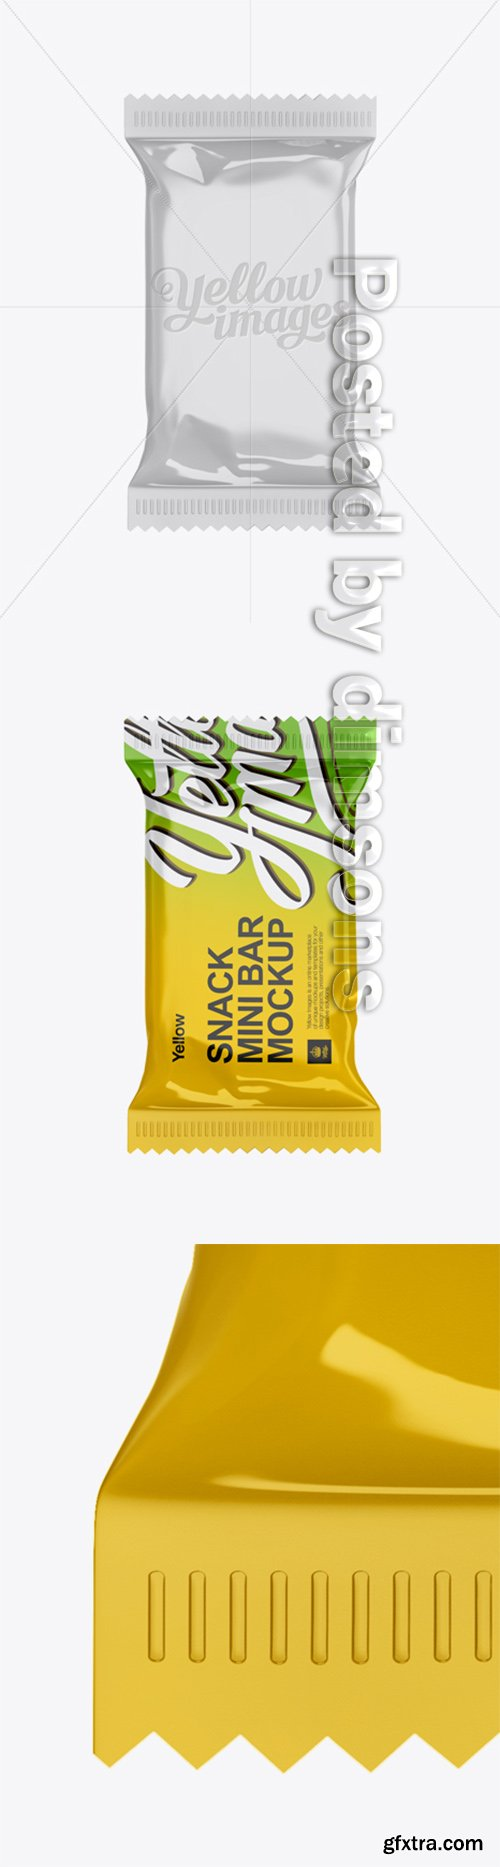 Small Glossy Snack Bar Mockup - Front View 14590